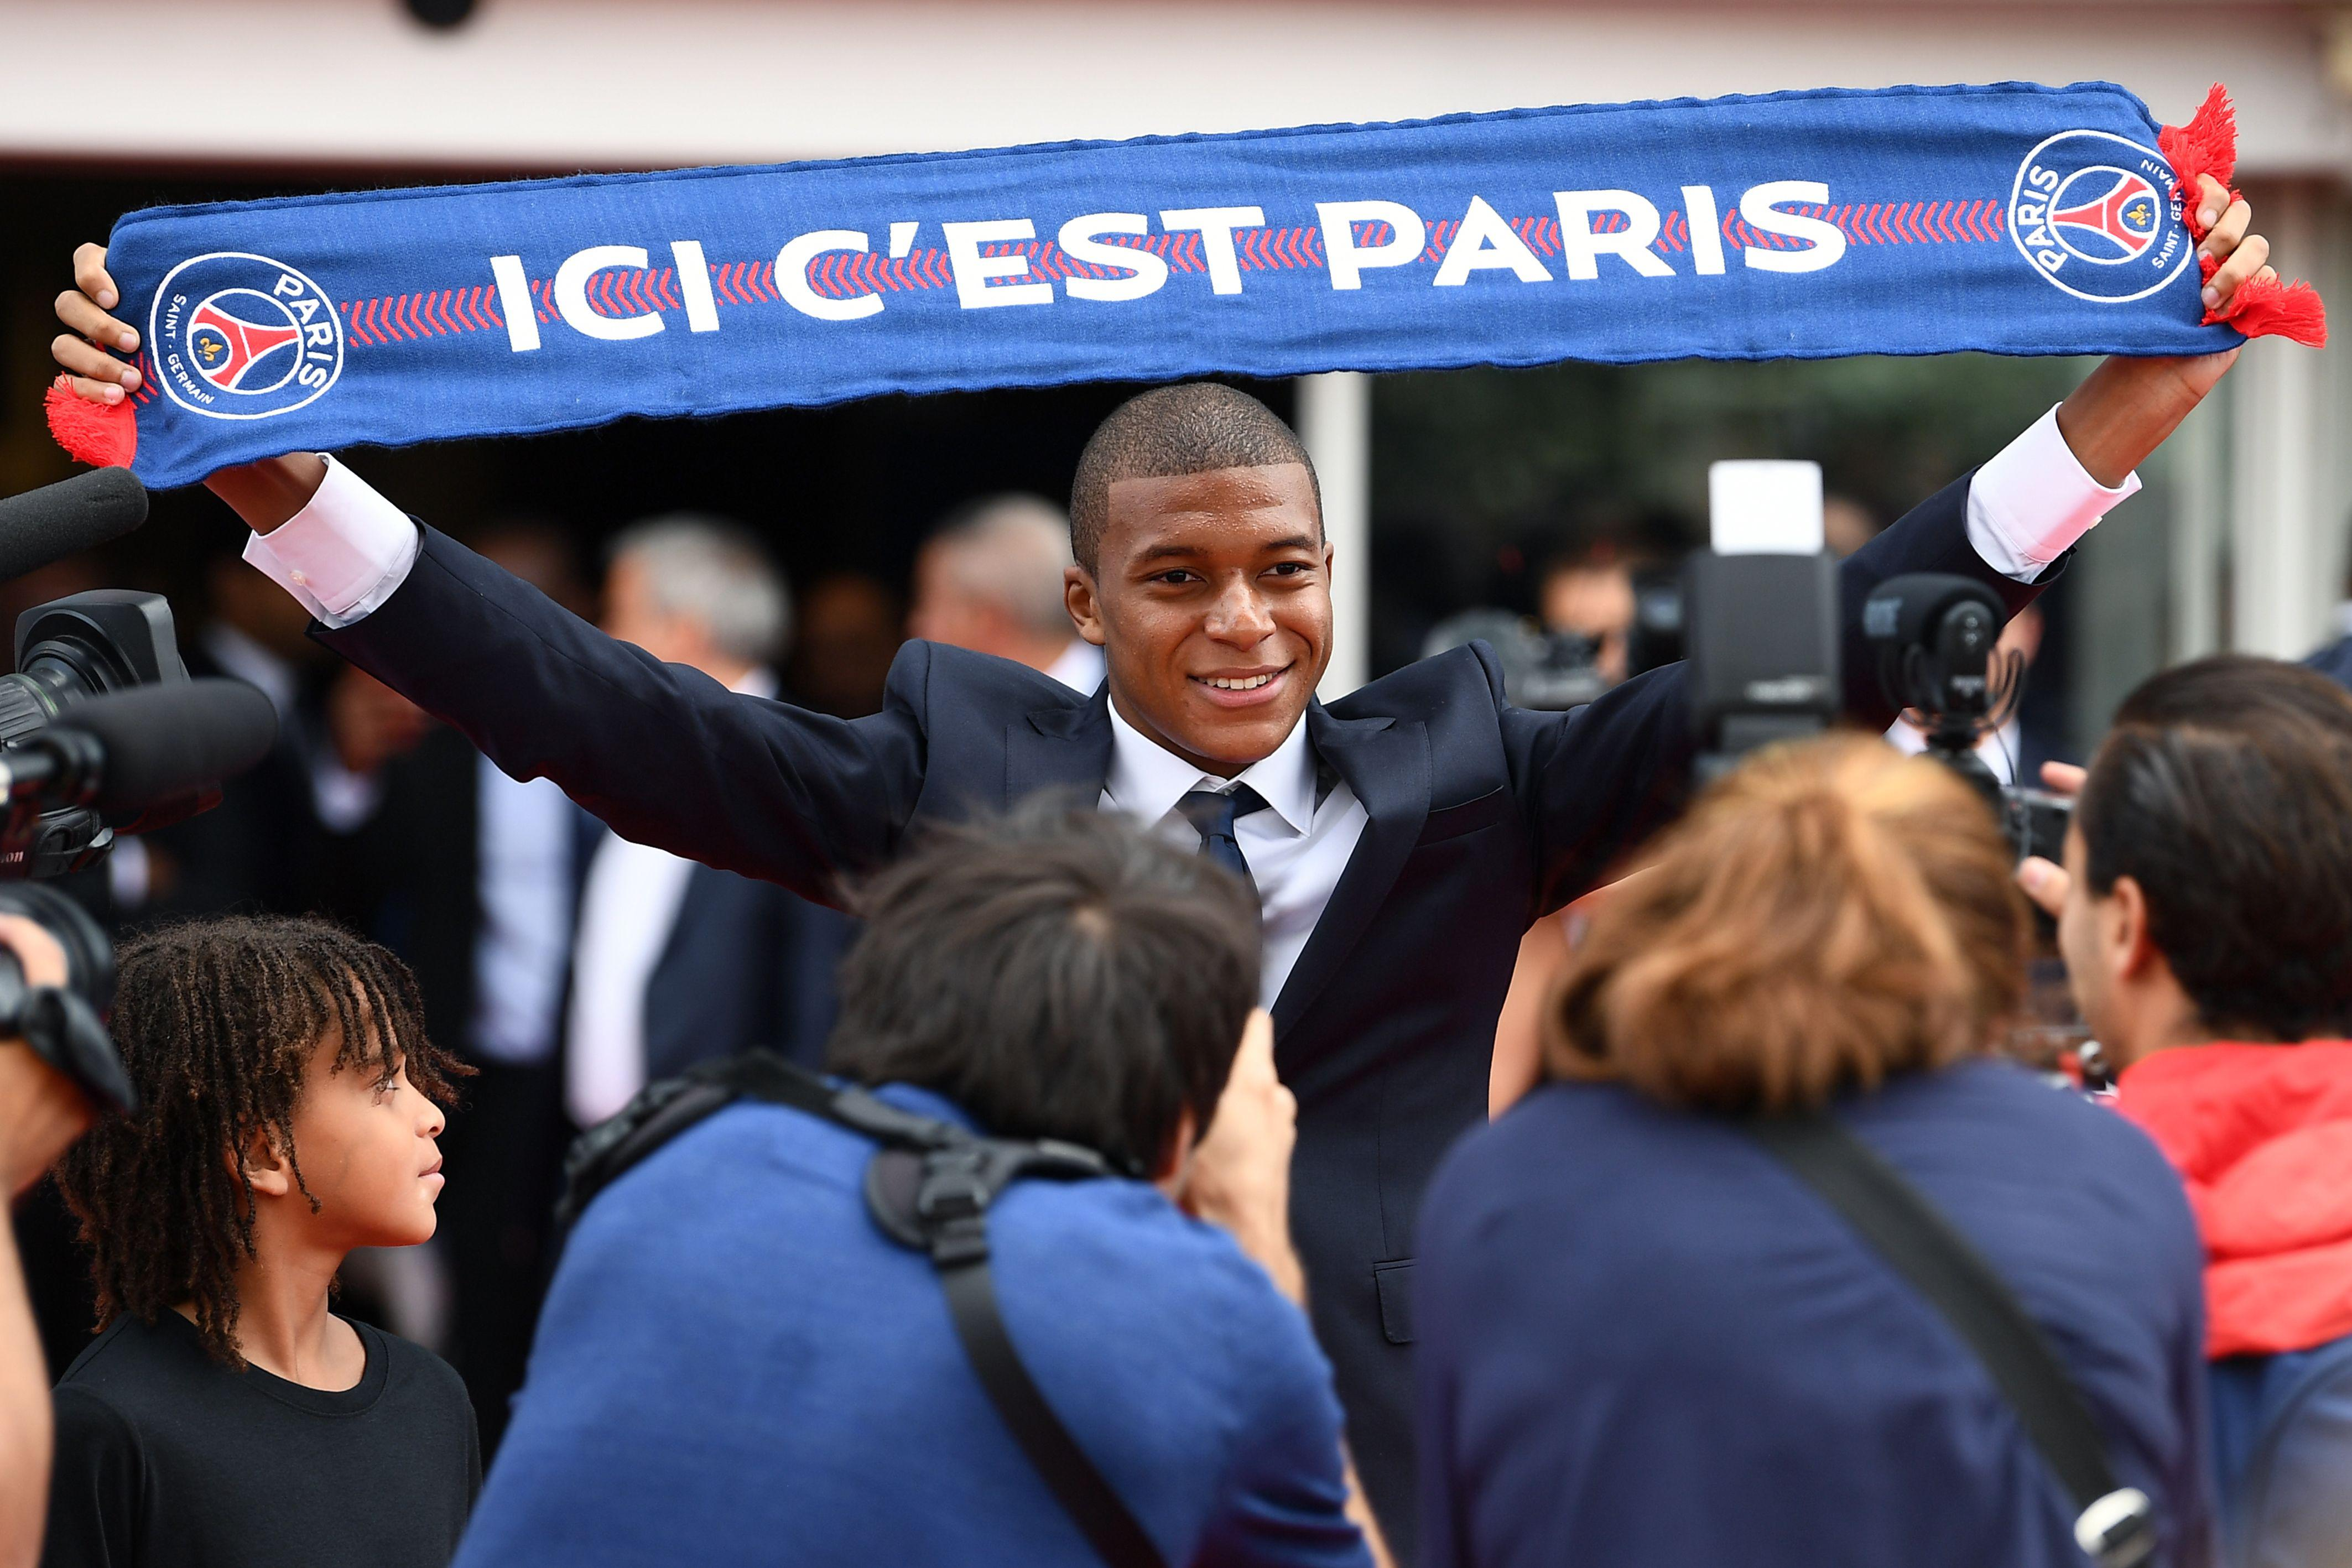 Mbappe's deal to PSG is reflected in the new game